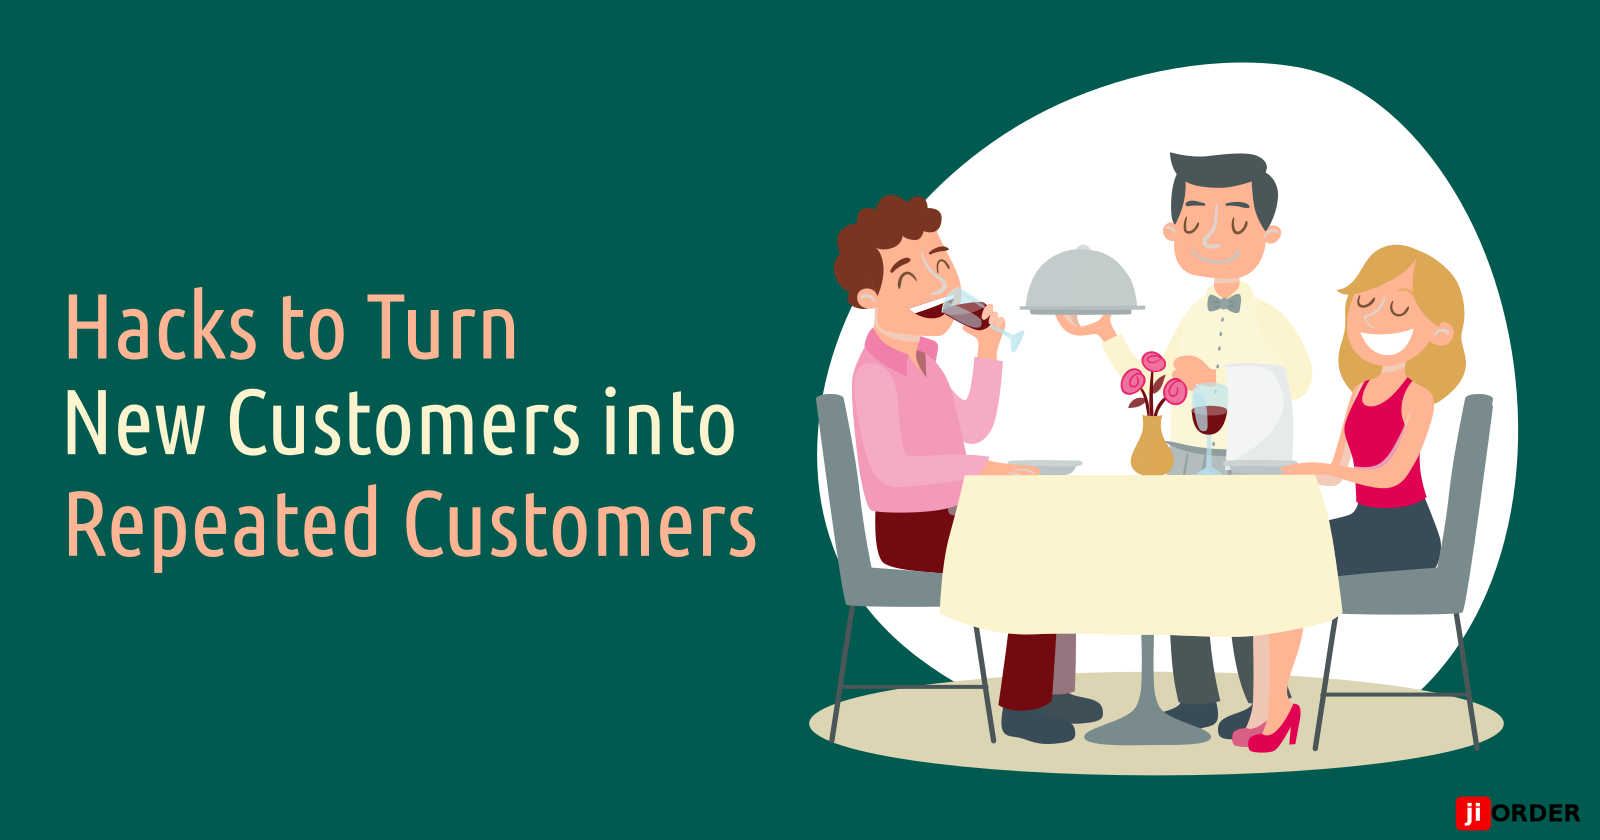 Hacks to Turn New Customers into Repeated Customers